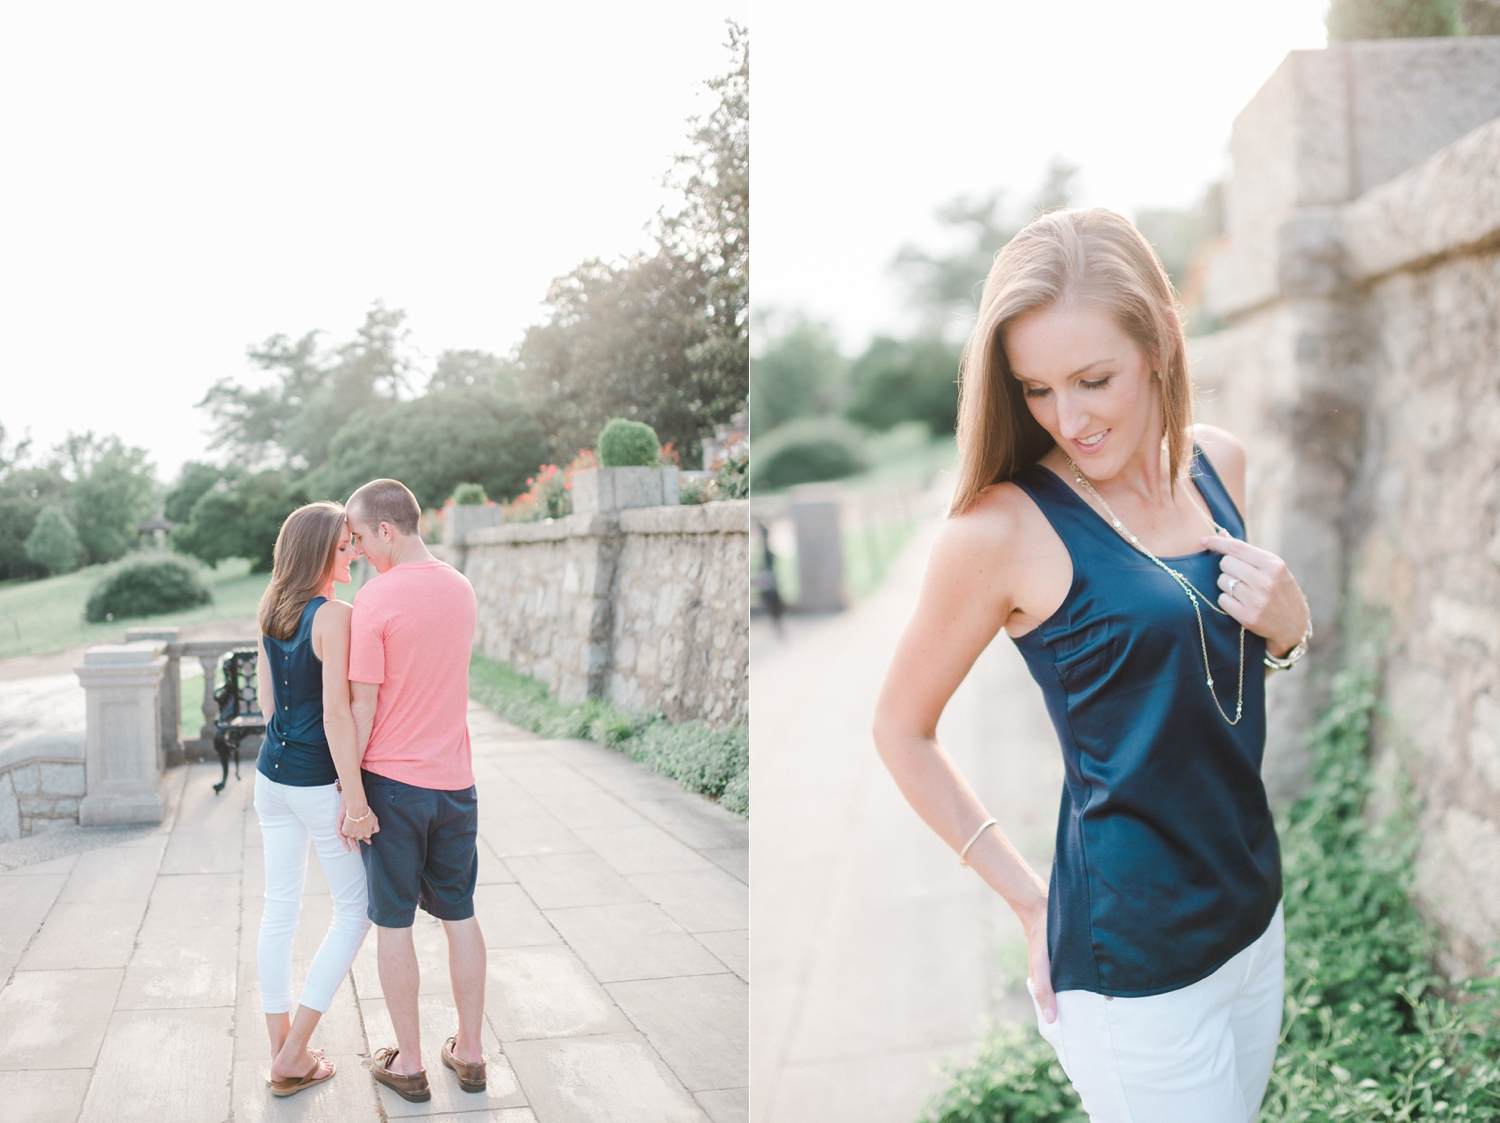 Maymon_Park_richmond_engagement_photography_0022.jpg